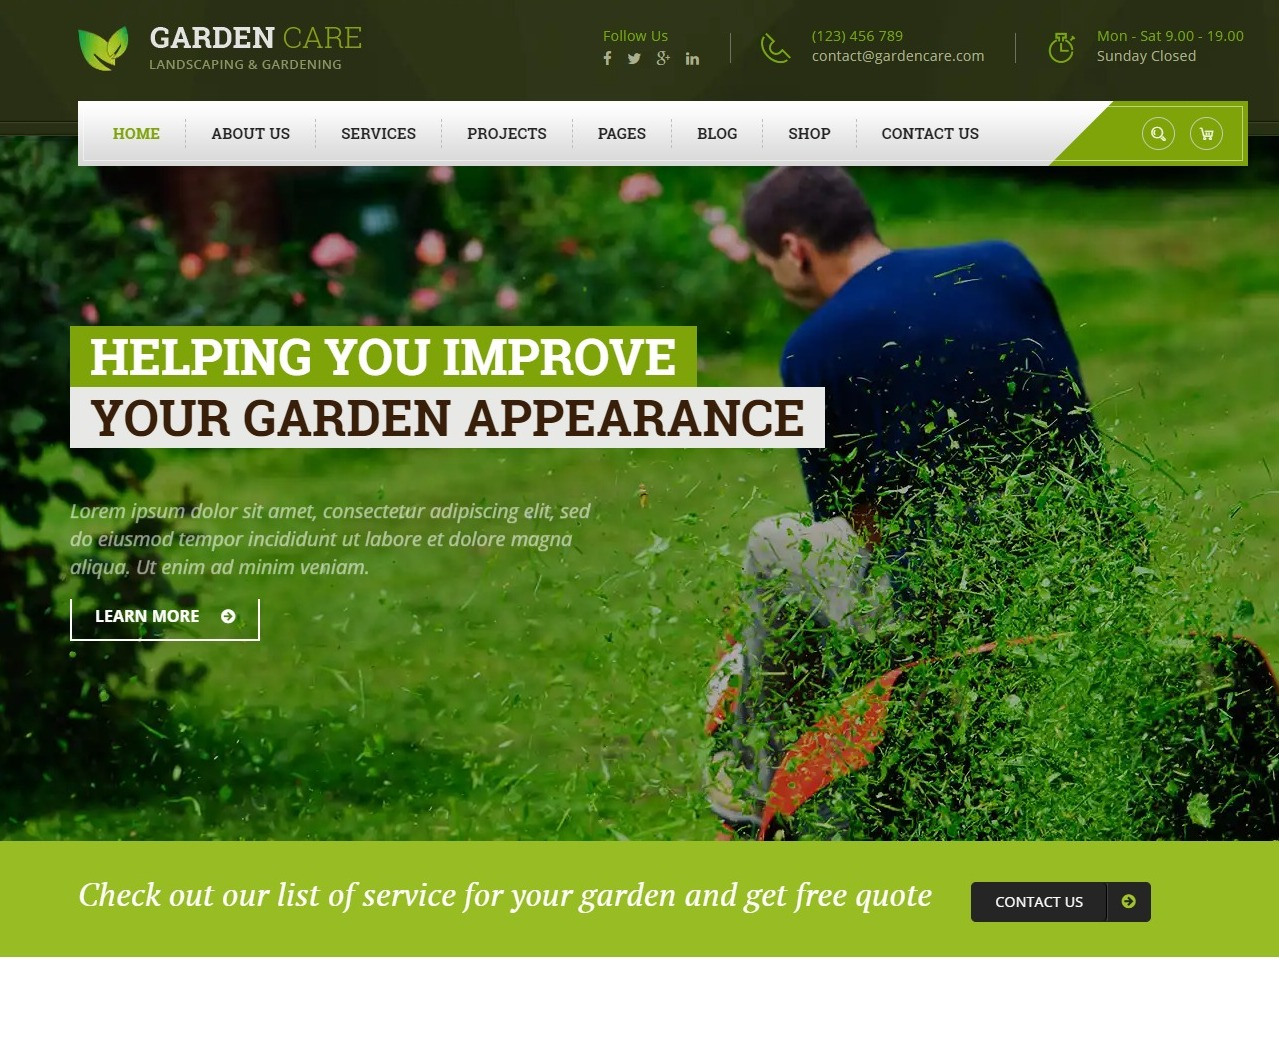 gardencare-agriculture-website-template